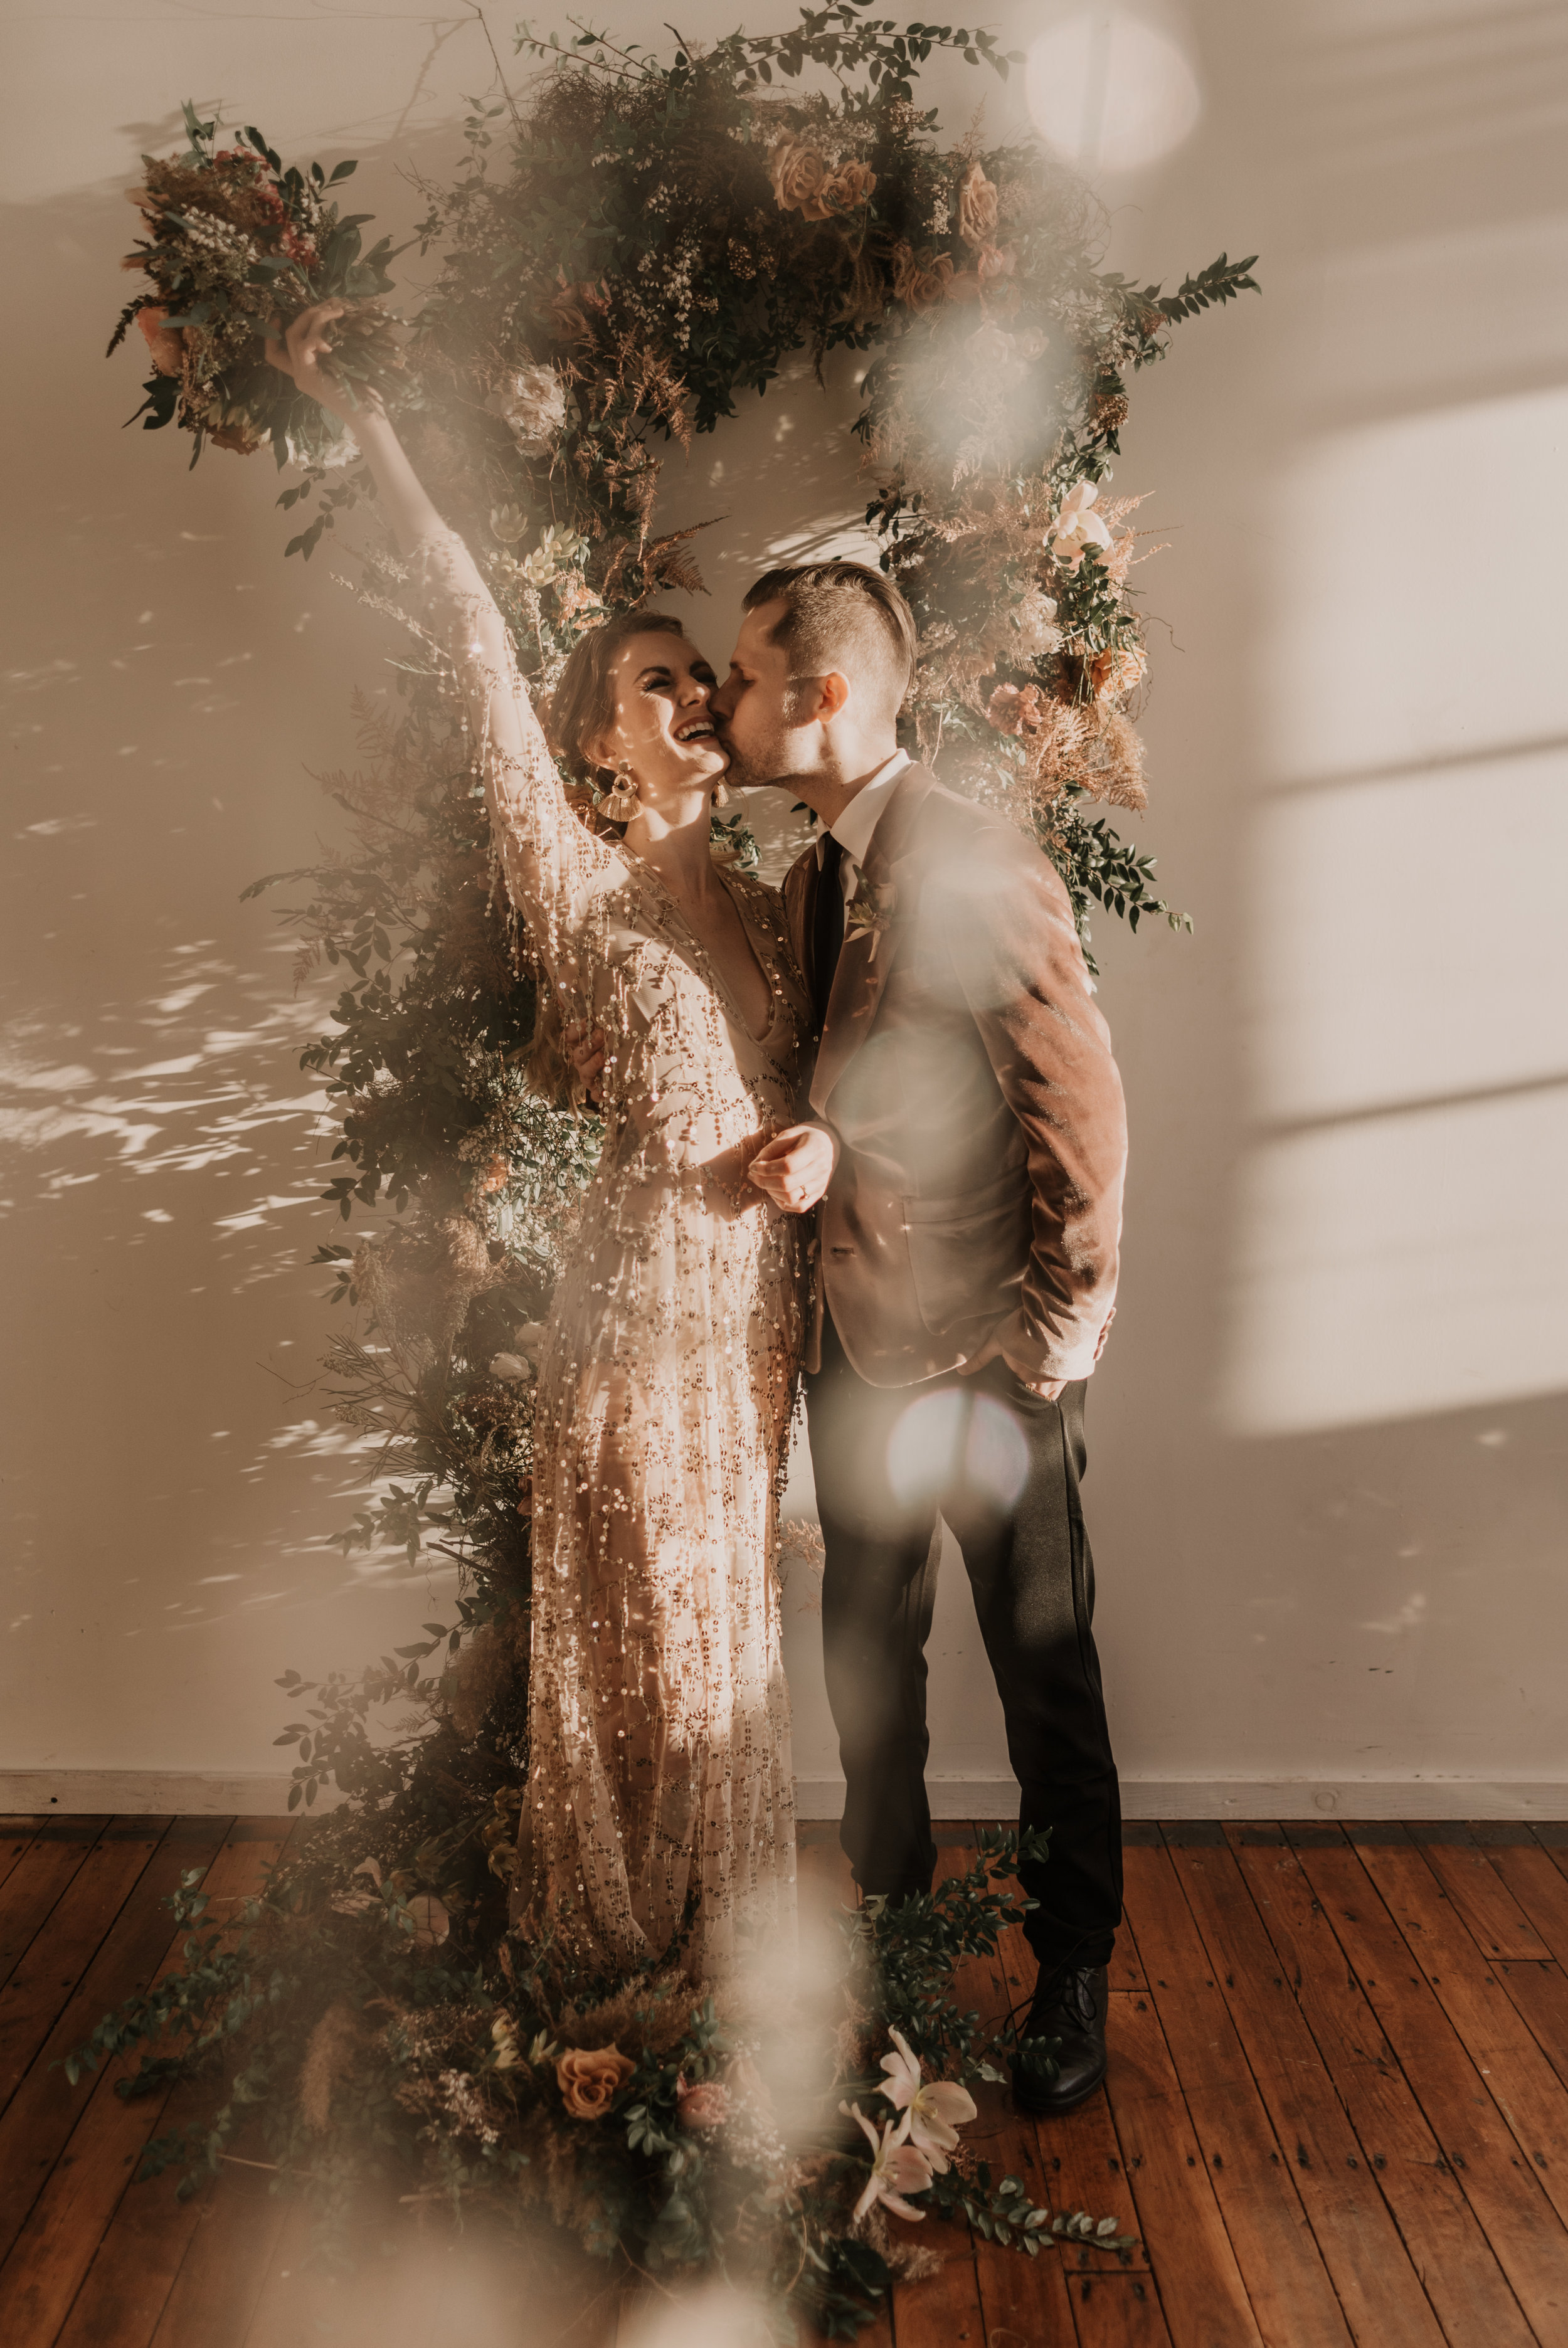 Bride and Grooms first kiss at their Mid-Century Modern Boho wedding - Pearl Weddings & Events